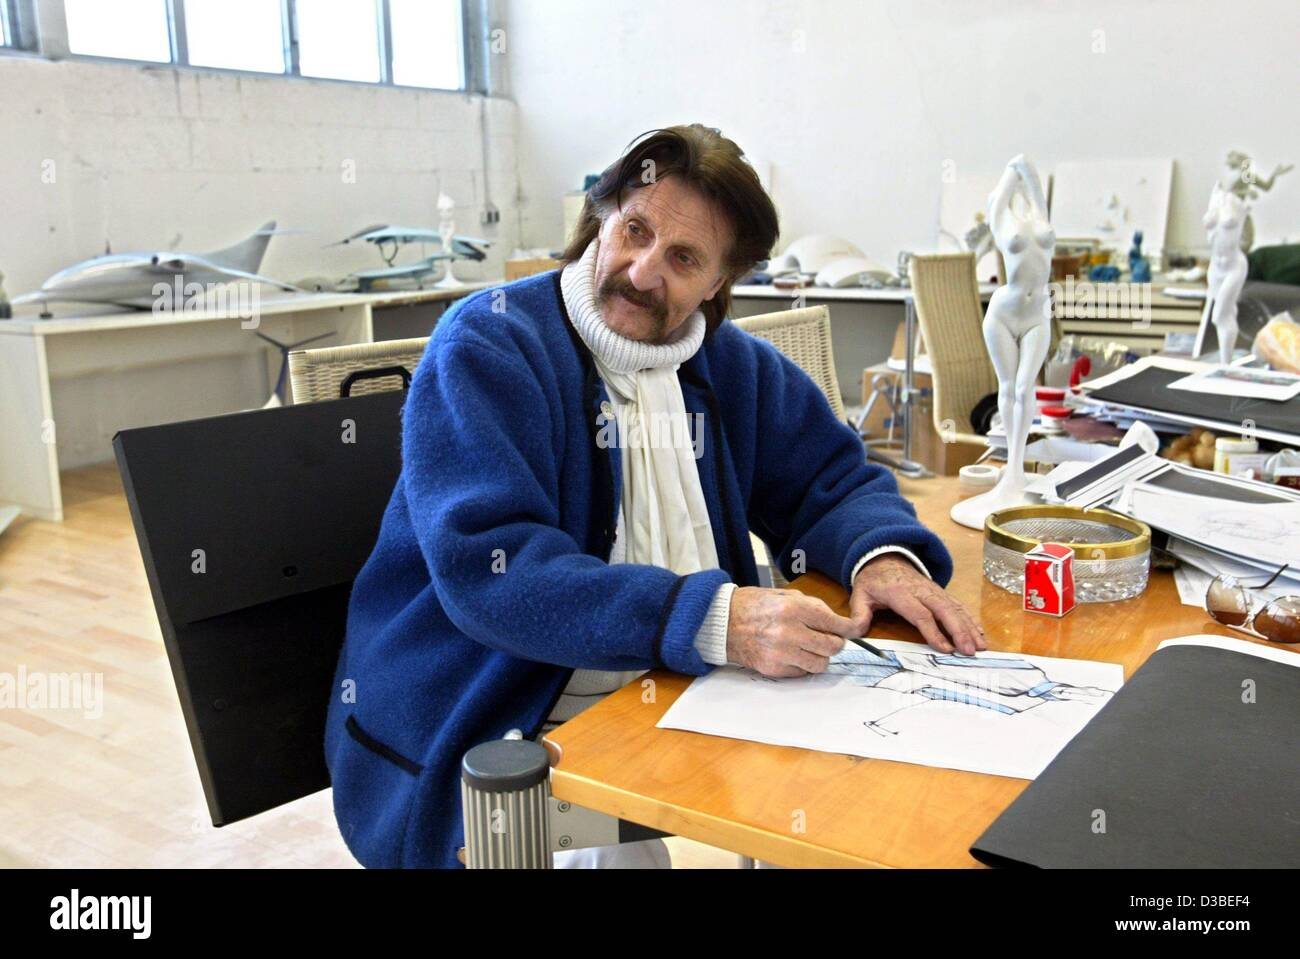 dpa industrial designer luigi colani is drawing in his workshop stock photo 53727944 alamy. Black Bedroom Furniture Sets. Home Design Ideas